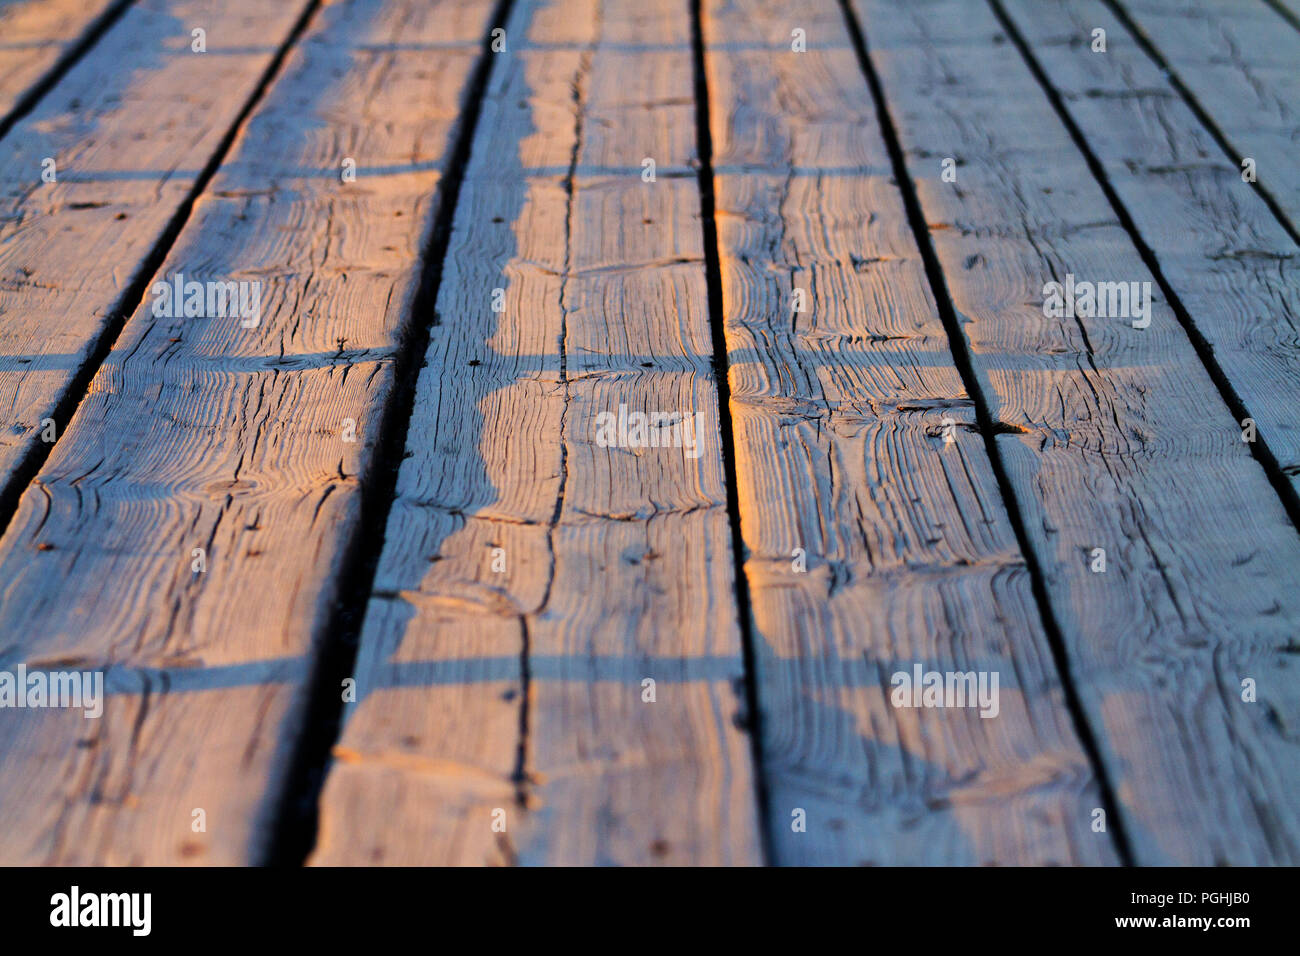 nice textured boards in perspective at sunset - Stock Image